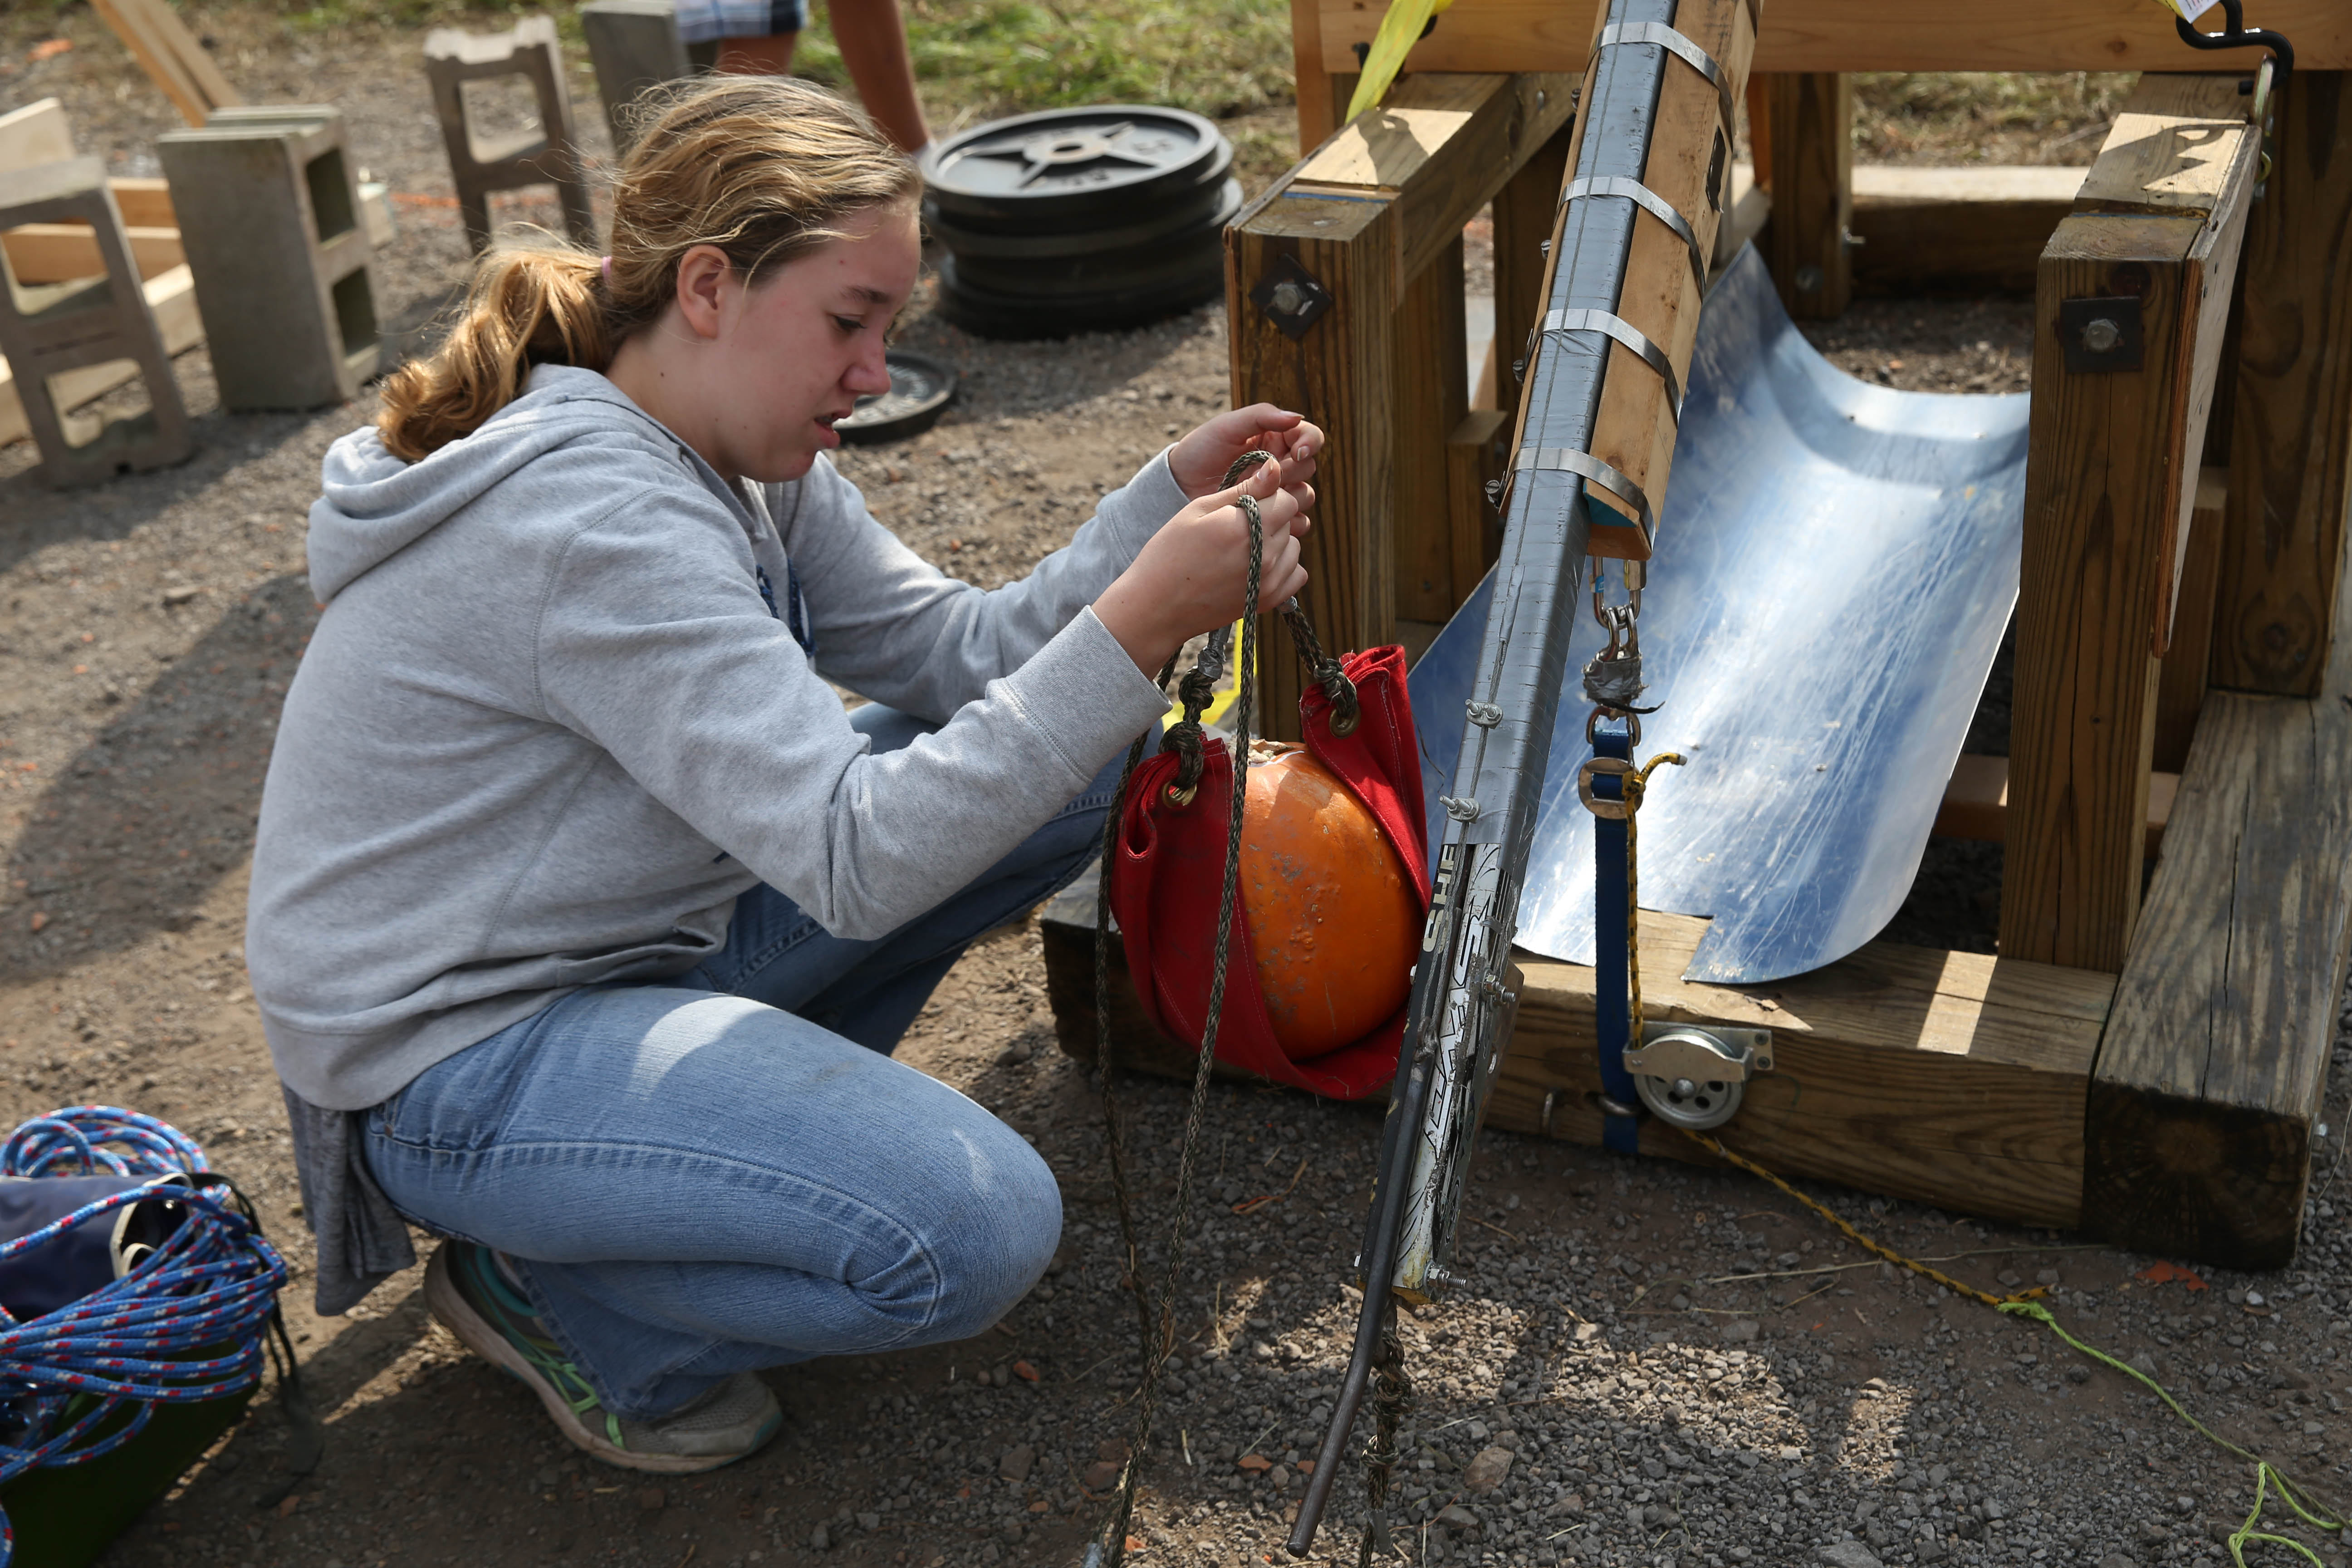 Angelica Tobe of Hamburg High School puts the pumpkin into the sling. (Sharon Cantillon/Buffalo News)